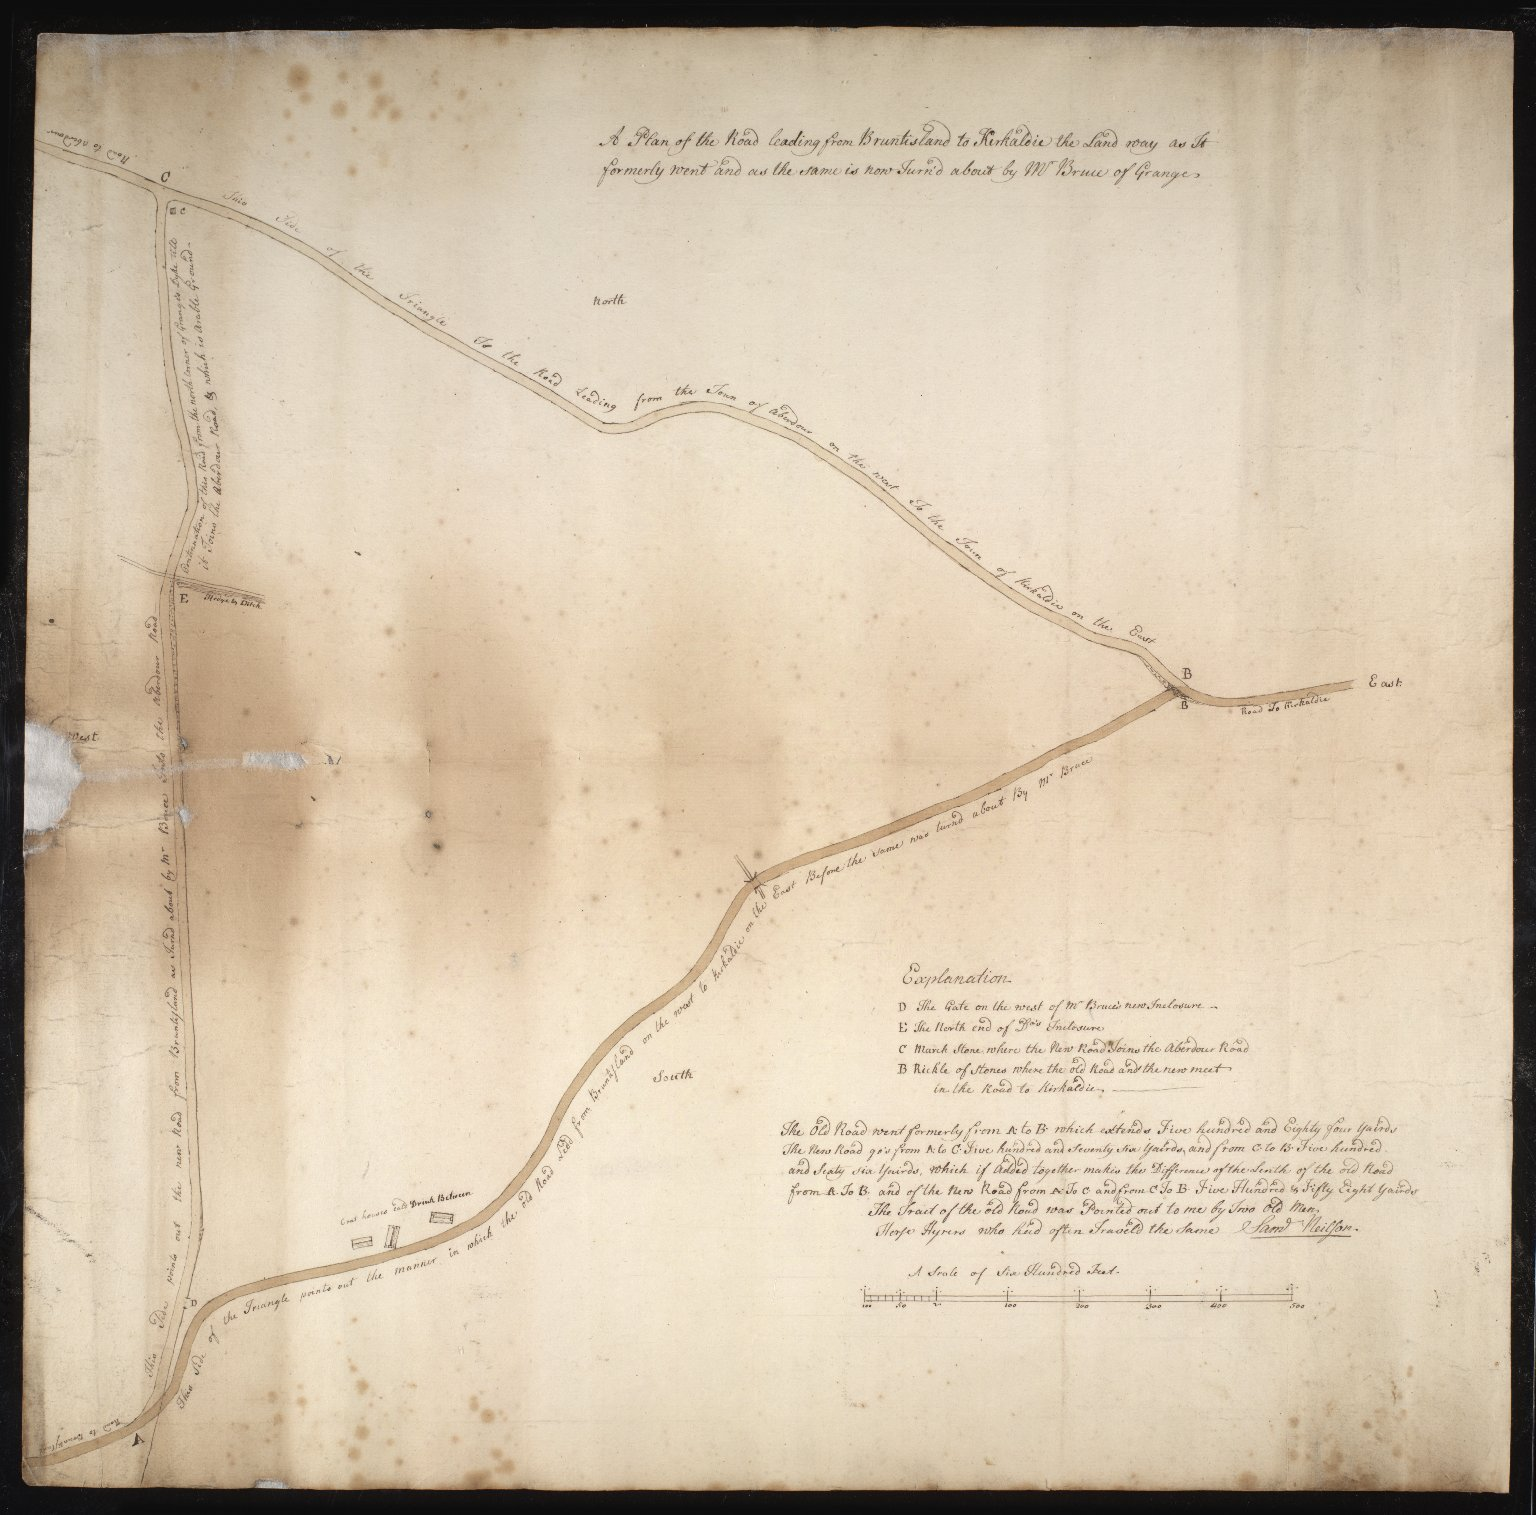 A Plan of the Road leading from Bruntisland to Kirkaldie the Land way as It formerly went and as the same is now Turn'd about by Mr Bruce of Grange. [1 of 1]